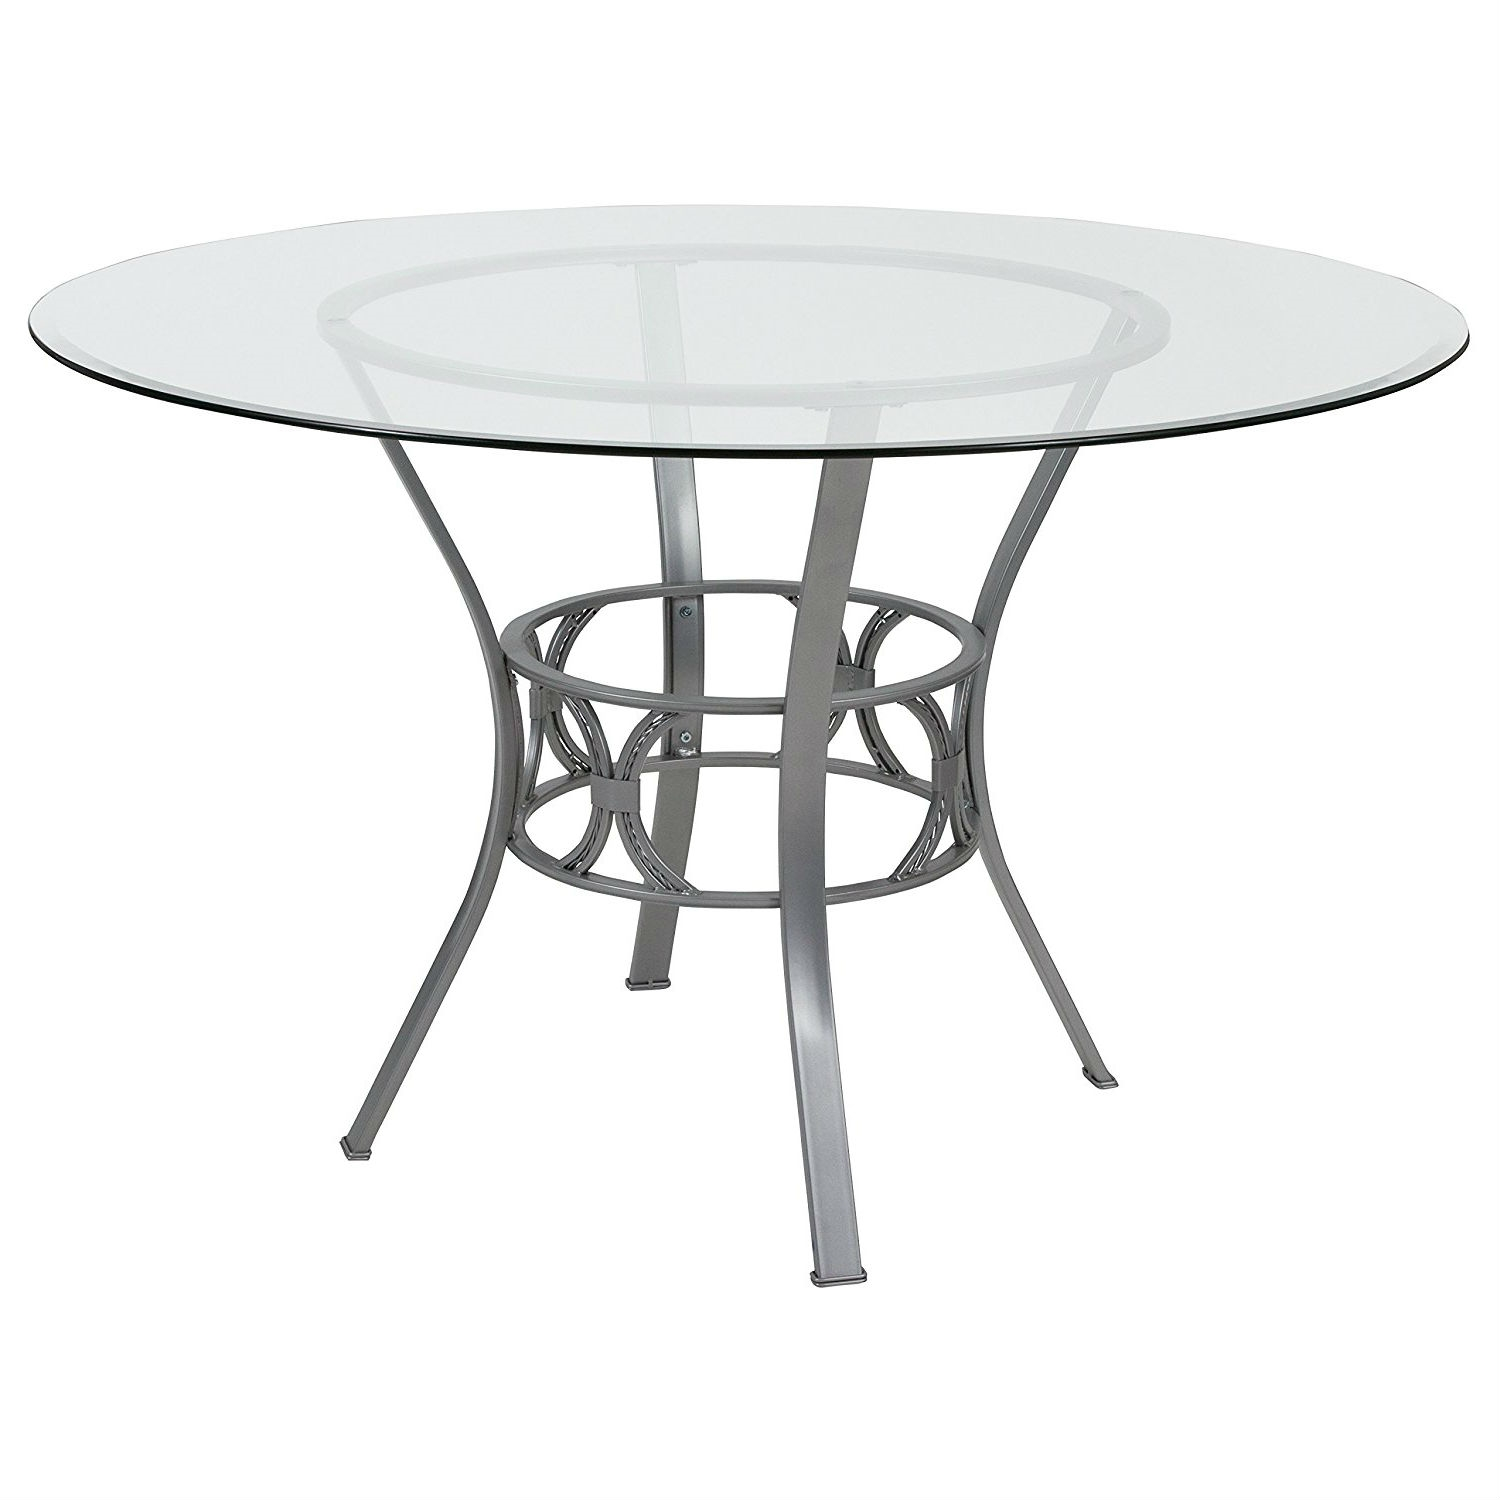 Contemporary Inch Round Clear Glass Dining Table With Silver - 48 inch round contemporary dining table